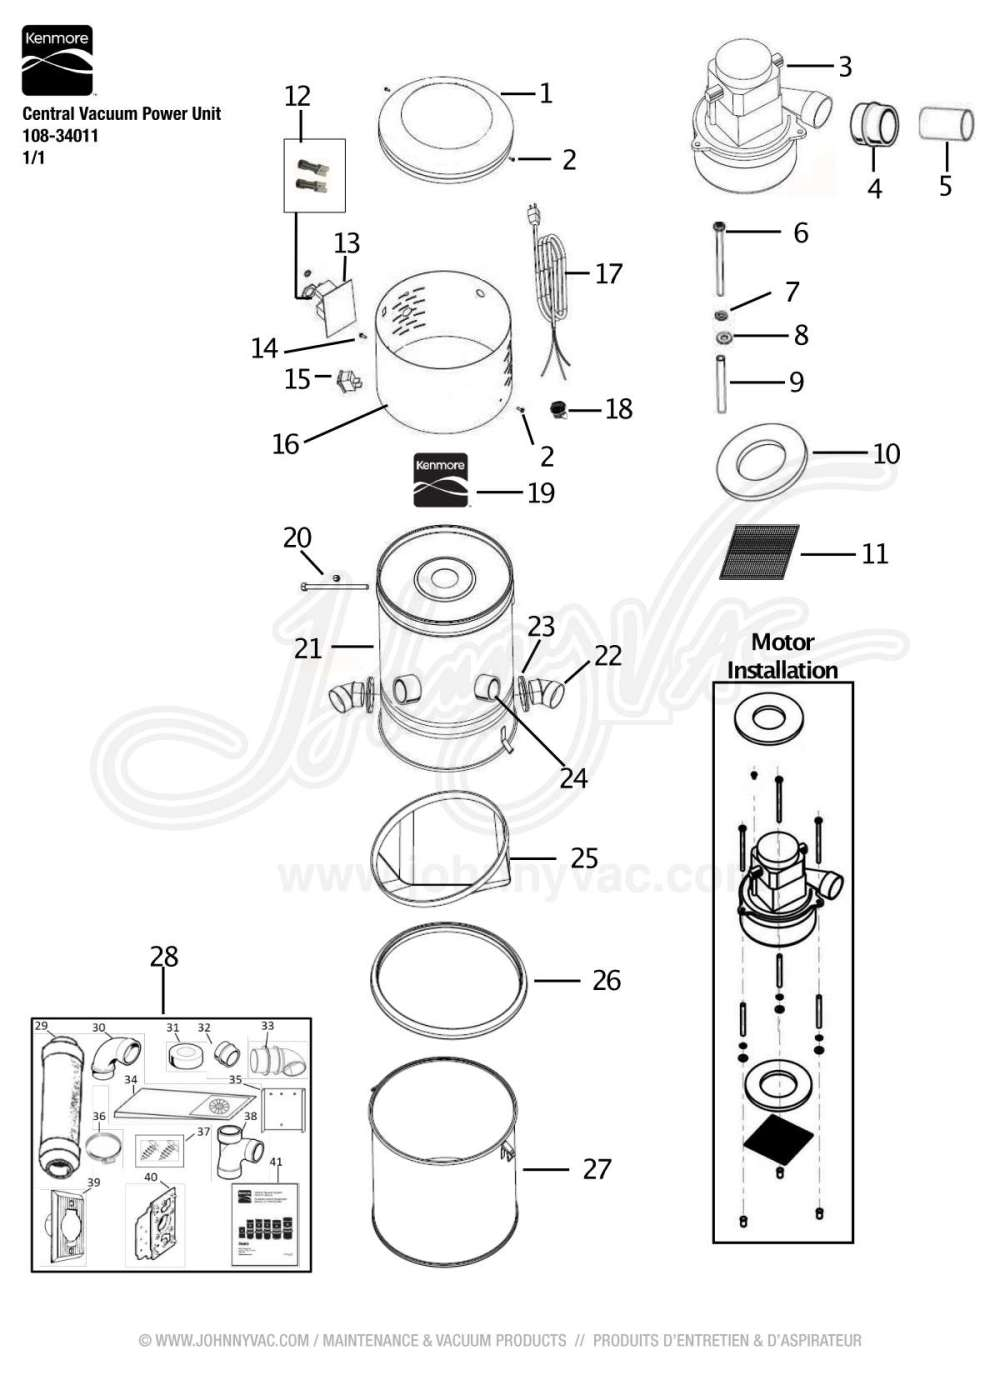 medium resolution of vacuum schematic exploded view for kenmore central vacuum power unit 108 34011